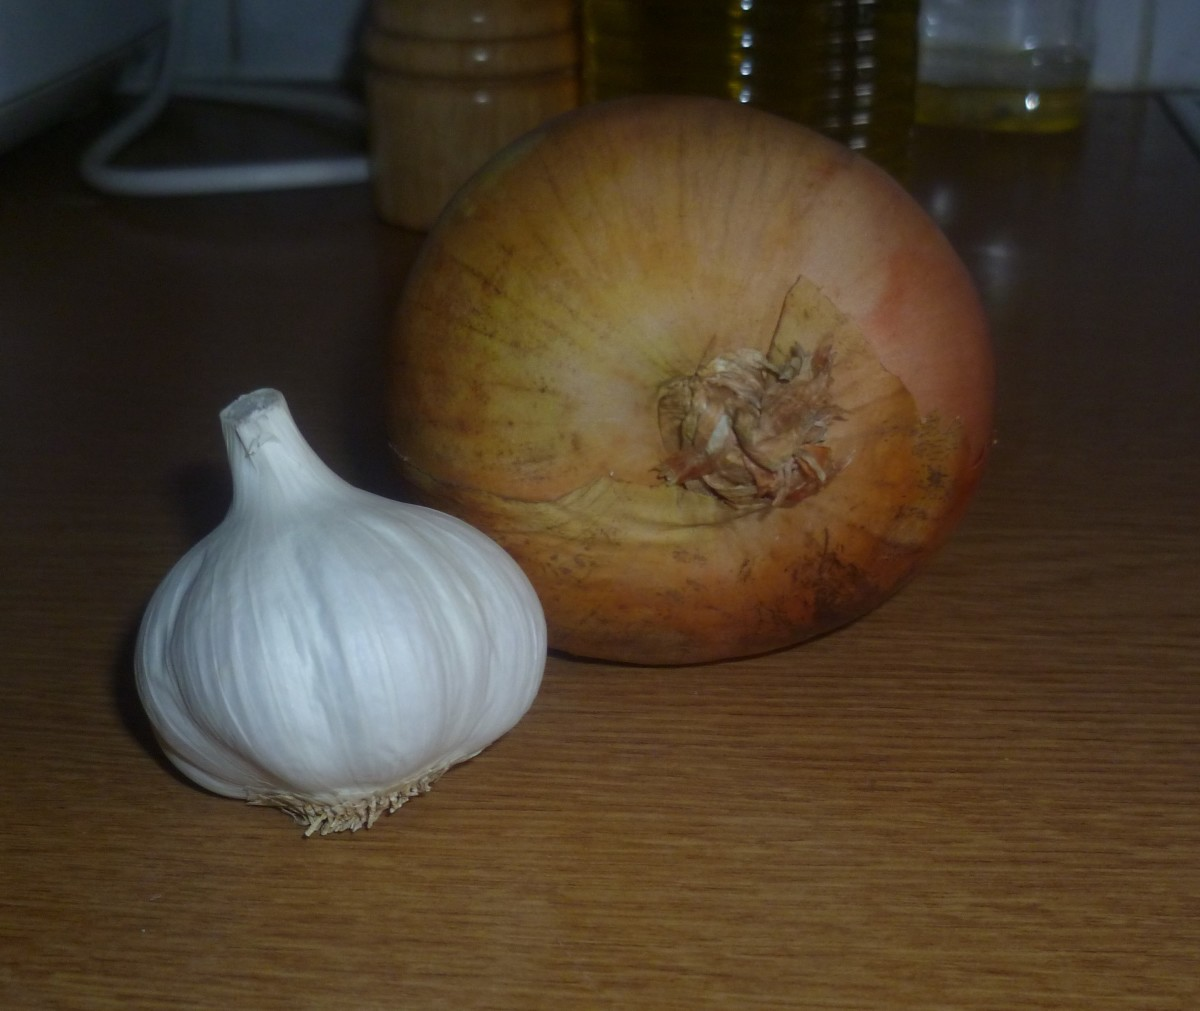 Chop one large onion and 1-2 cloves of garlic to taste.